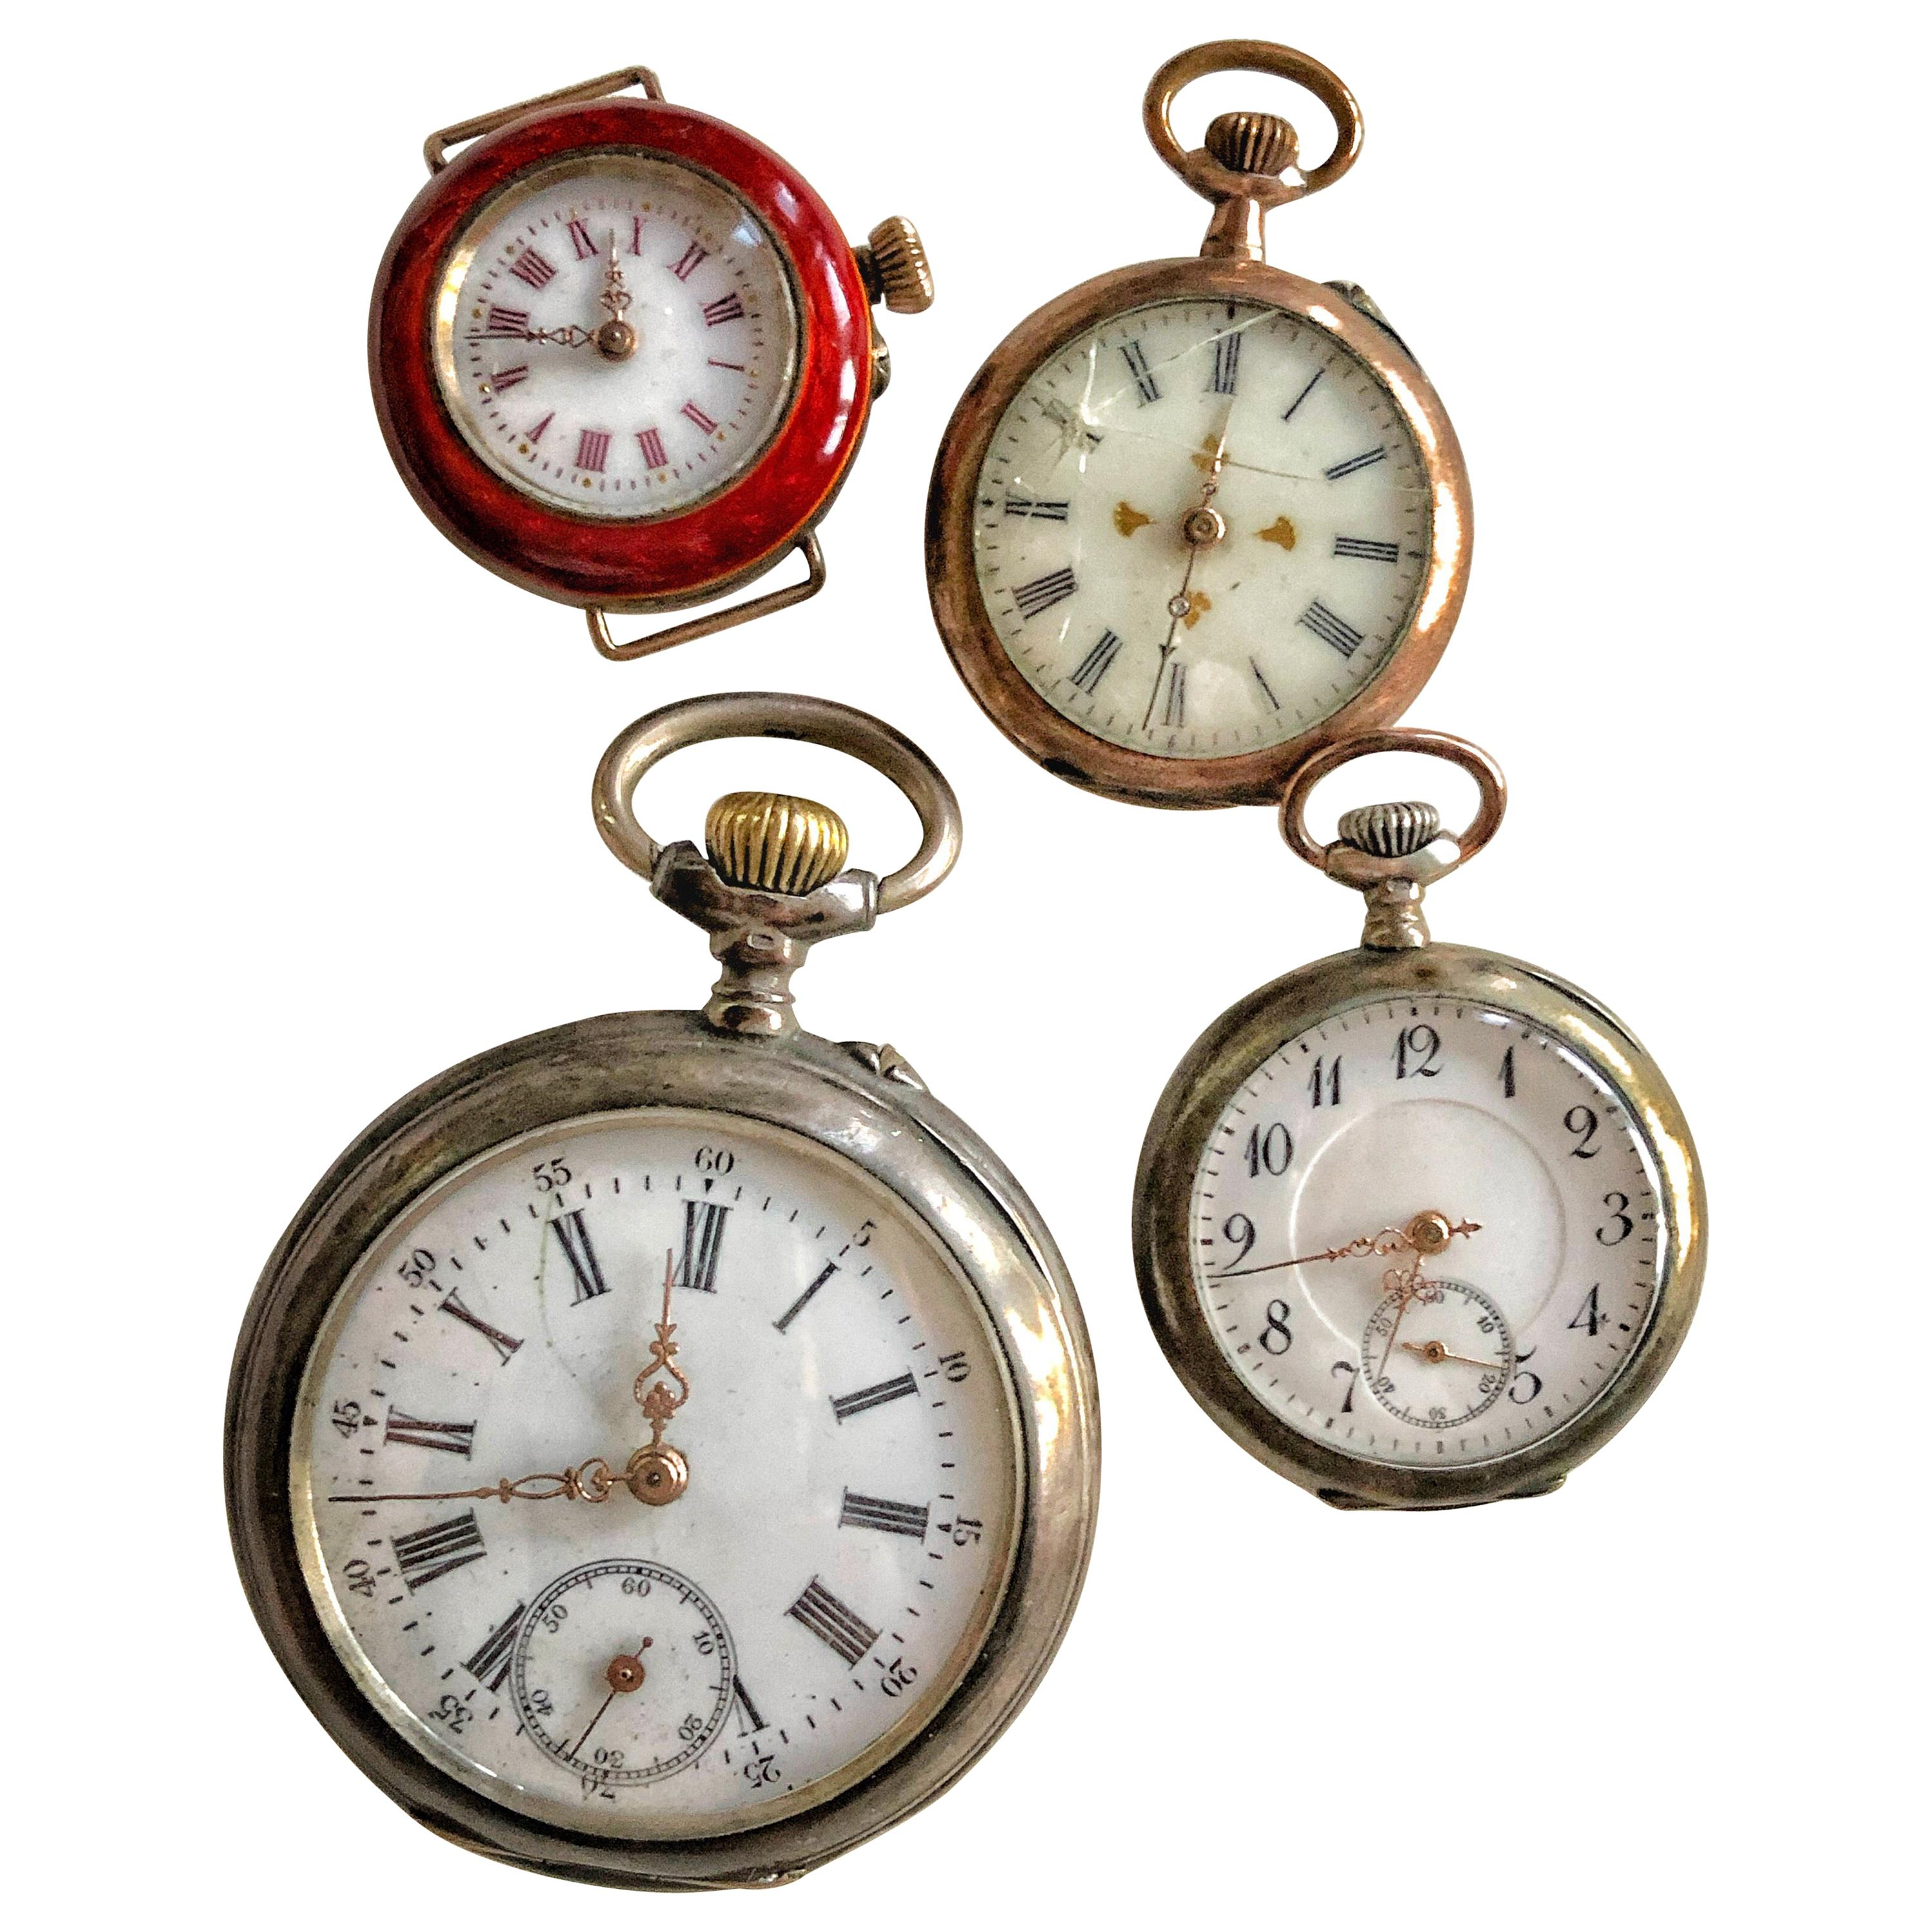 Collection of 4 Pocket Breguet Silver, Gold Watches, Enamel Pearls, Swiss SALE